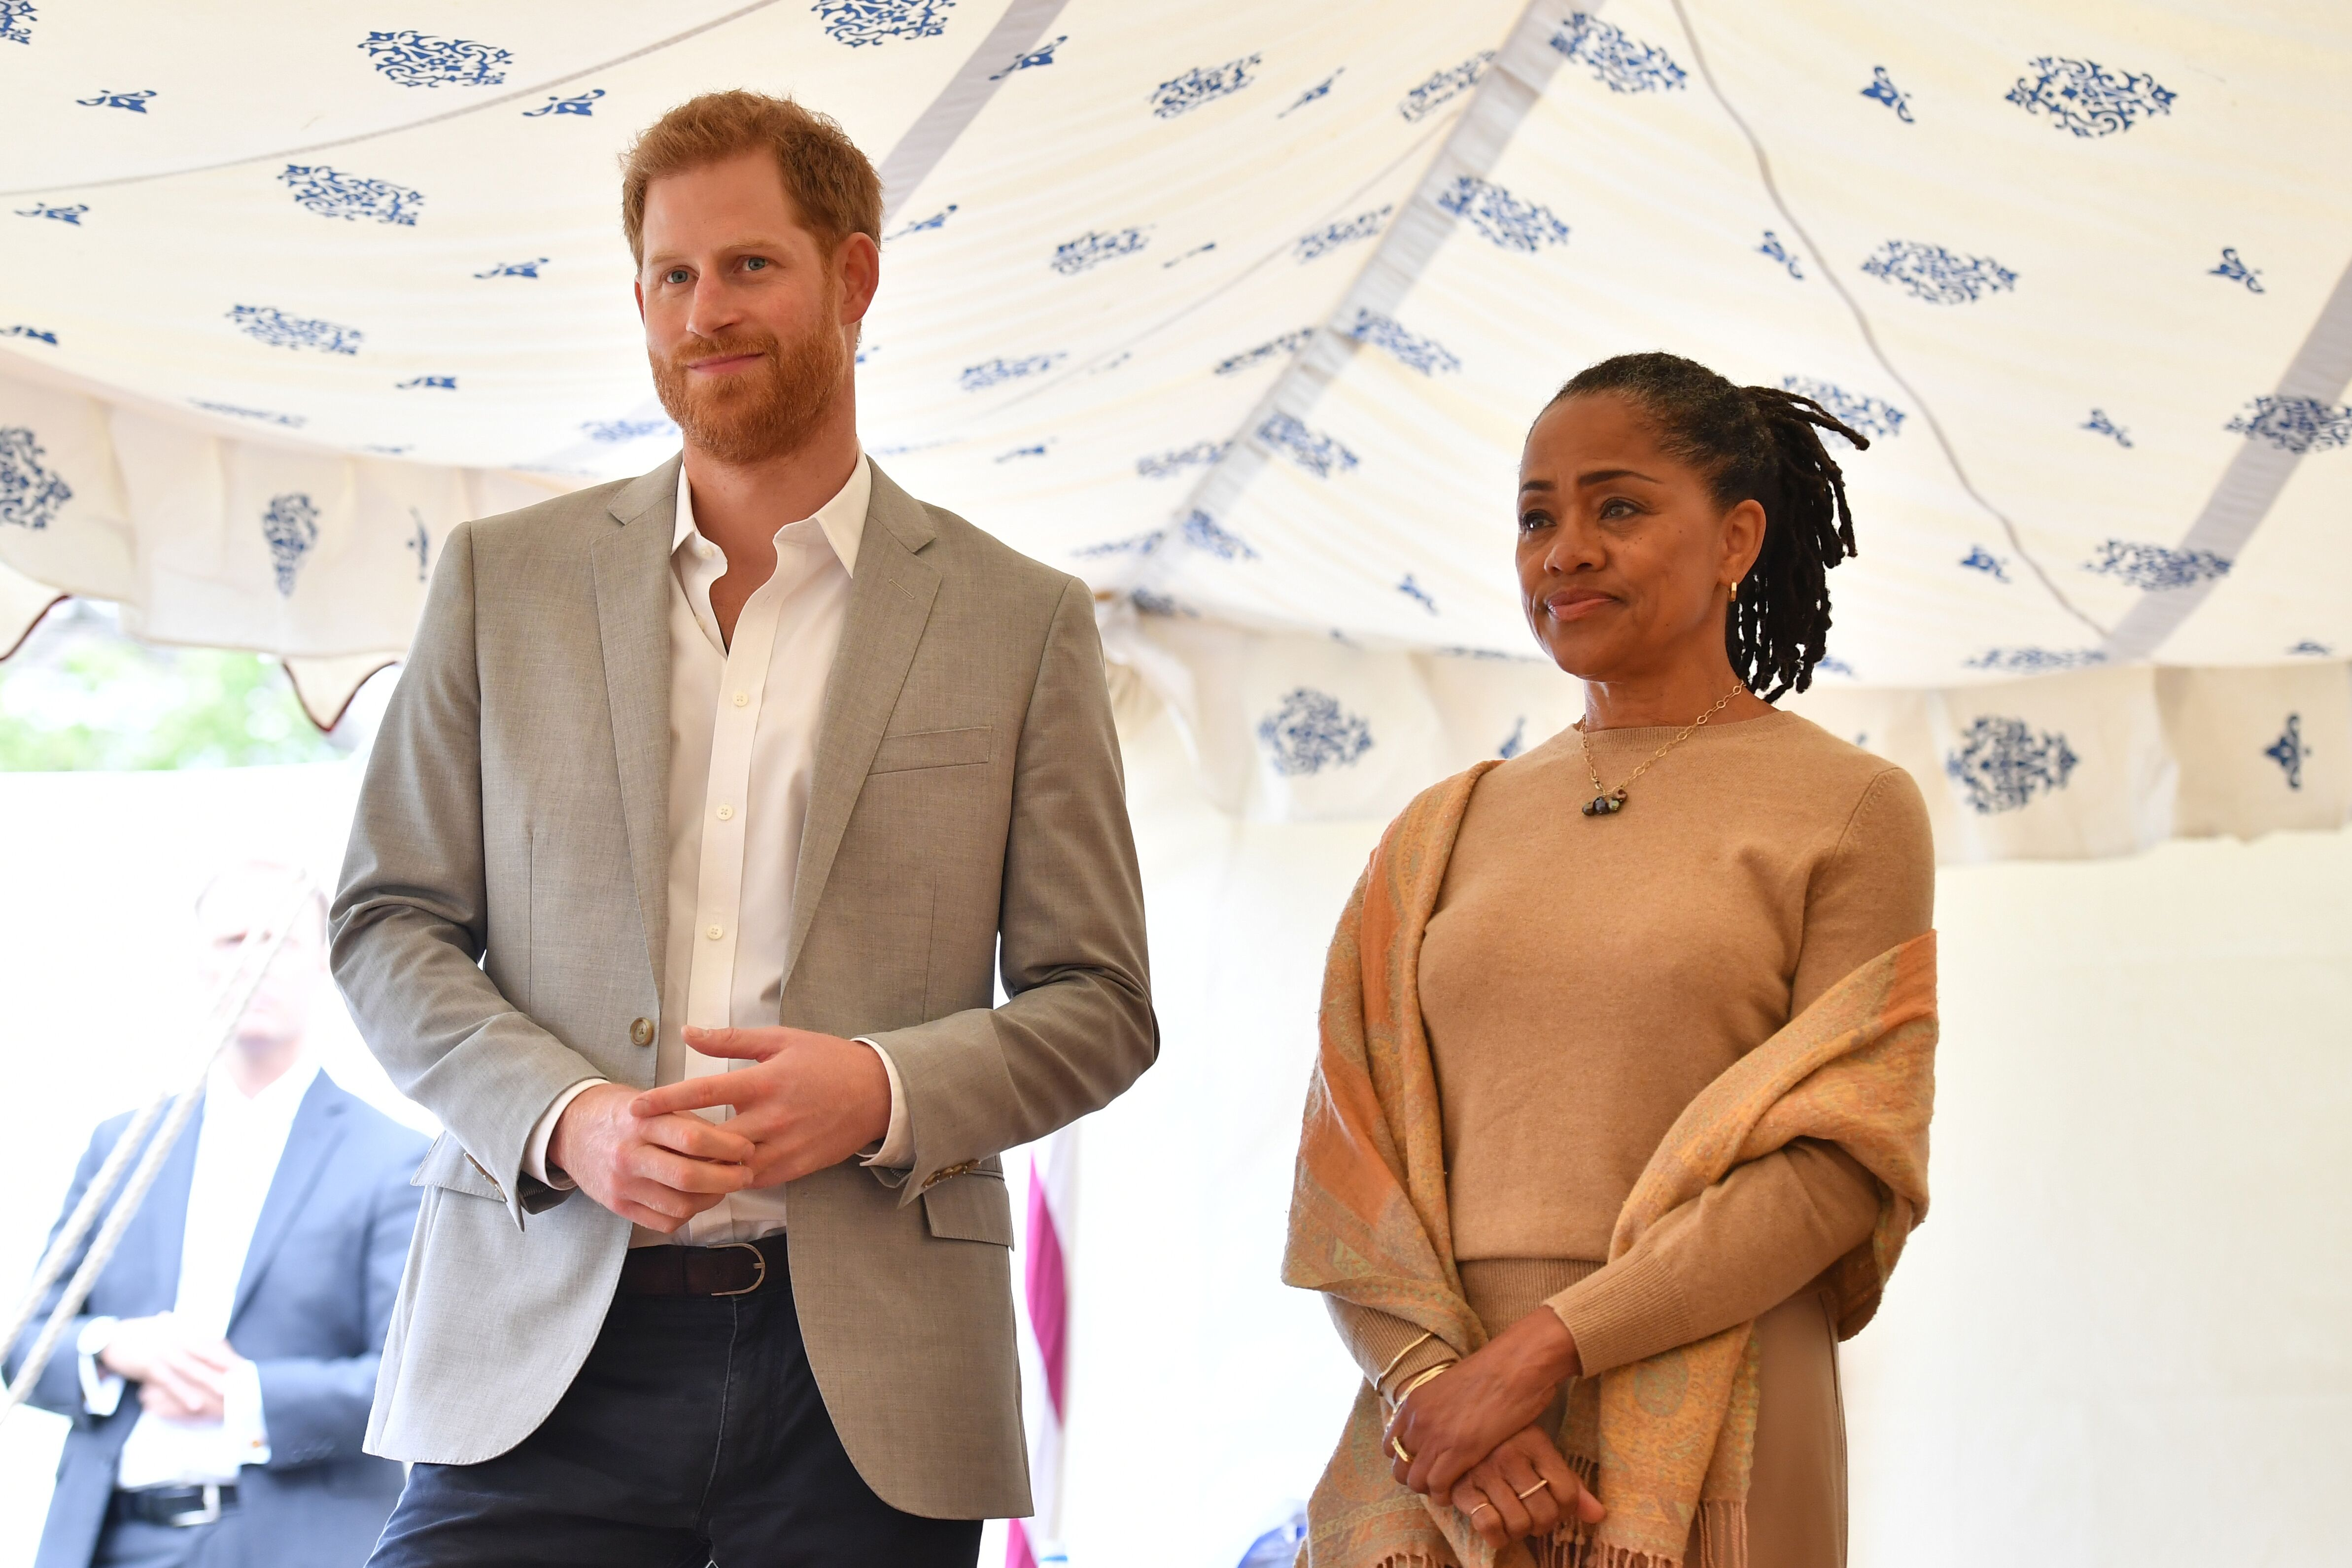 Prince Harry, Duke of Sussex and Doria Ragland listen to Meghan, Duchess of Sussex speaking at an event to mark the launch of a cookbook with recipes from a group of women affected by the Grenfell Tower fire at Kensington Palace. | Photo: Getty Images